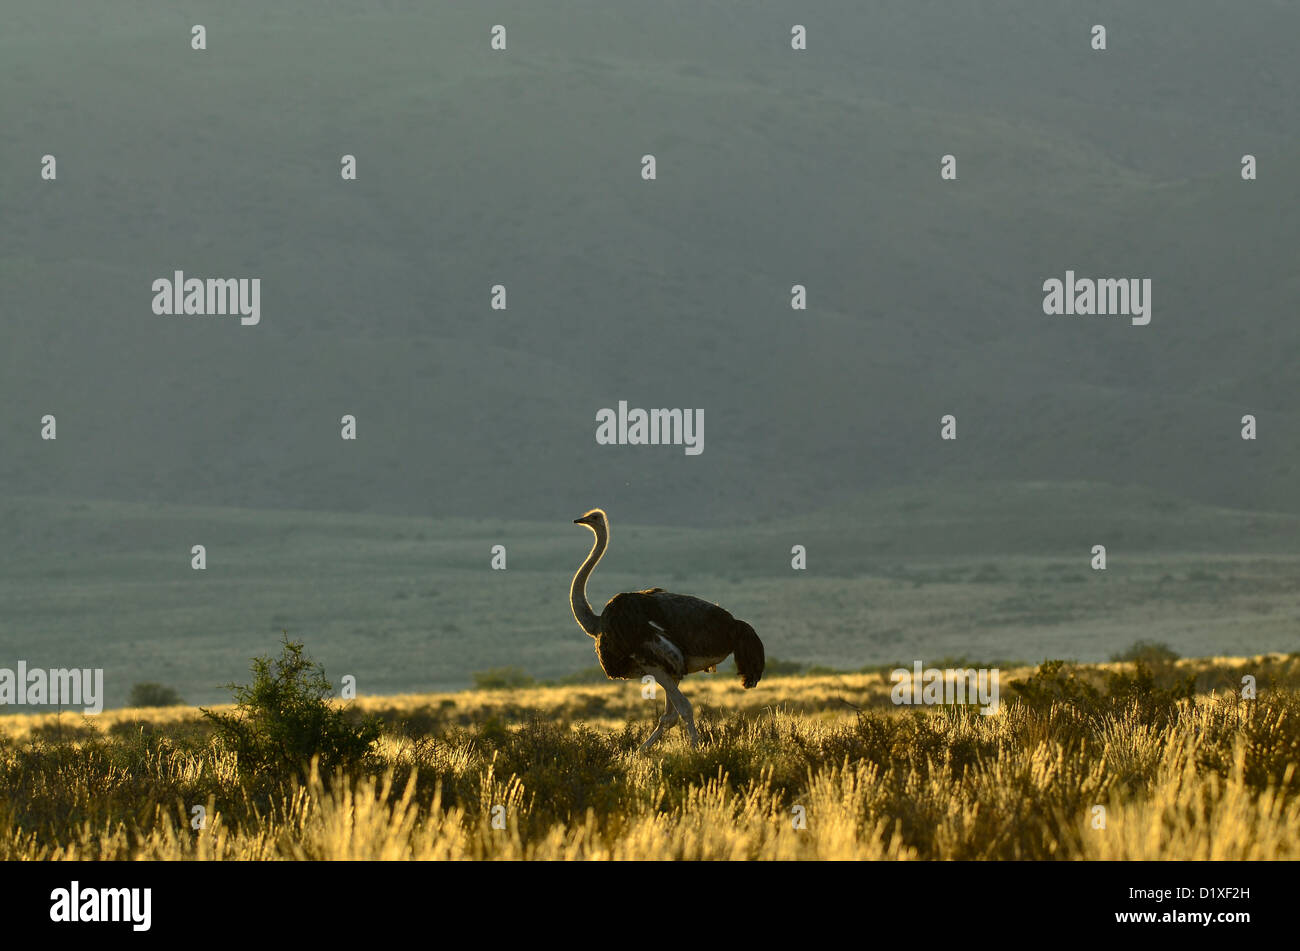 Male ostrich walking against backlighting in Karoo National Park, South Africa - Stock Image